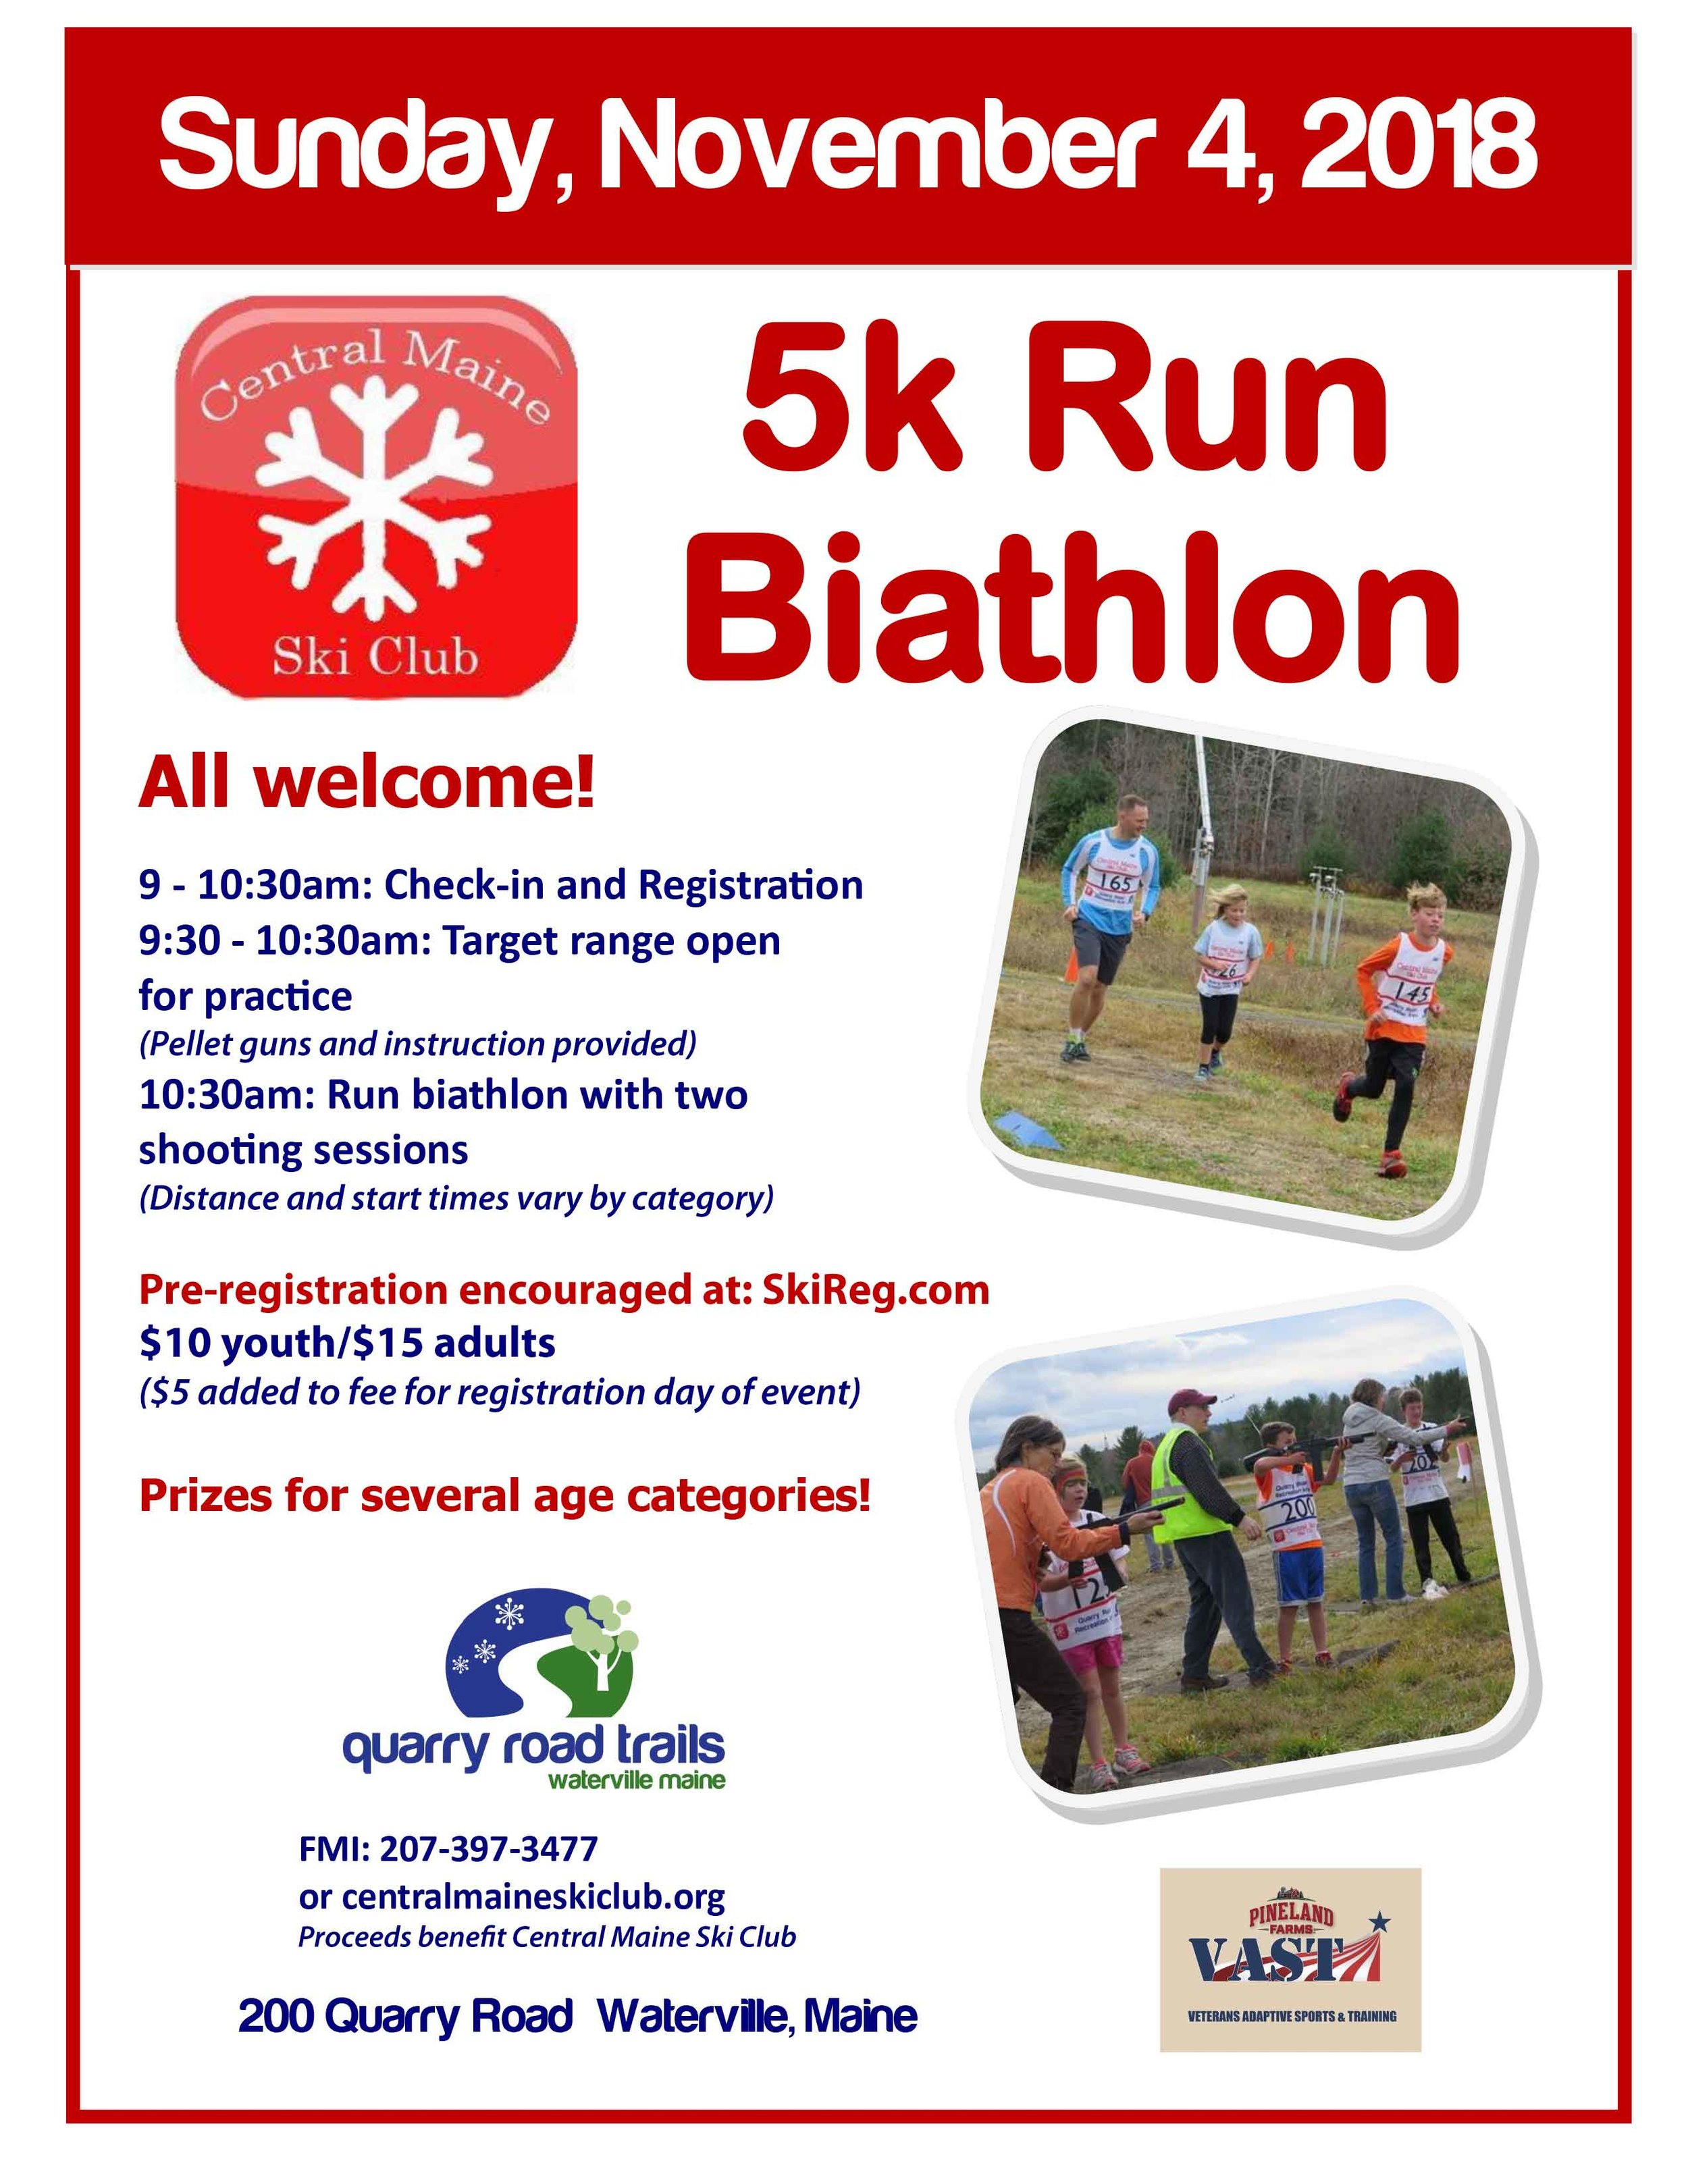 Run-biathlon-flyer-Nov-2018.jpg